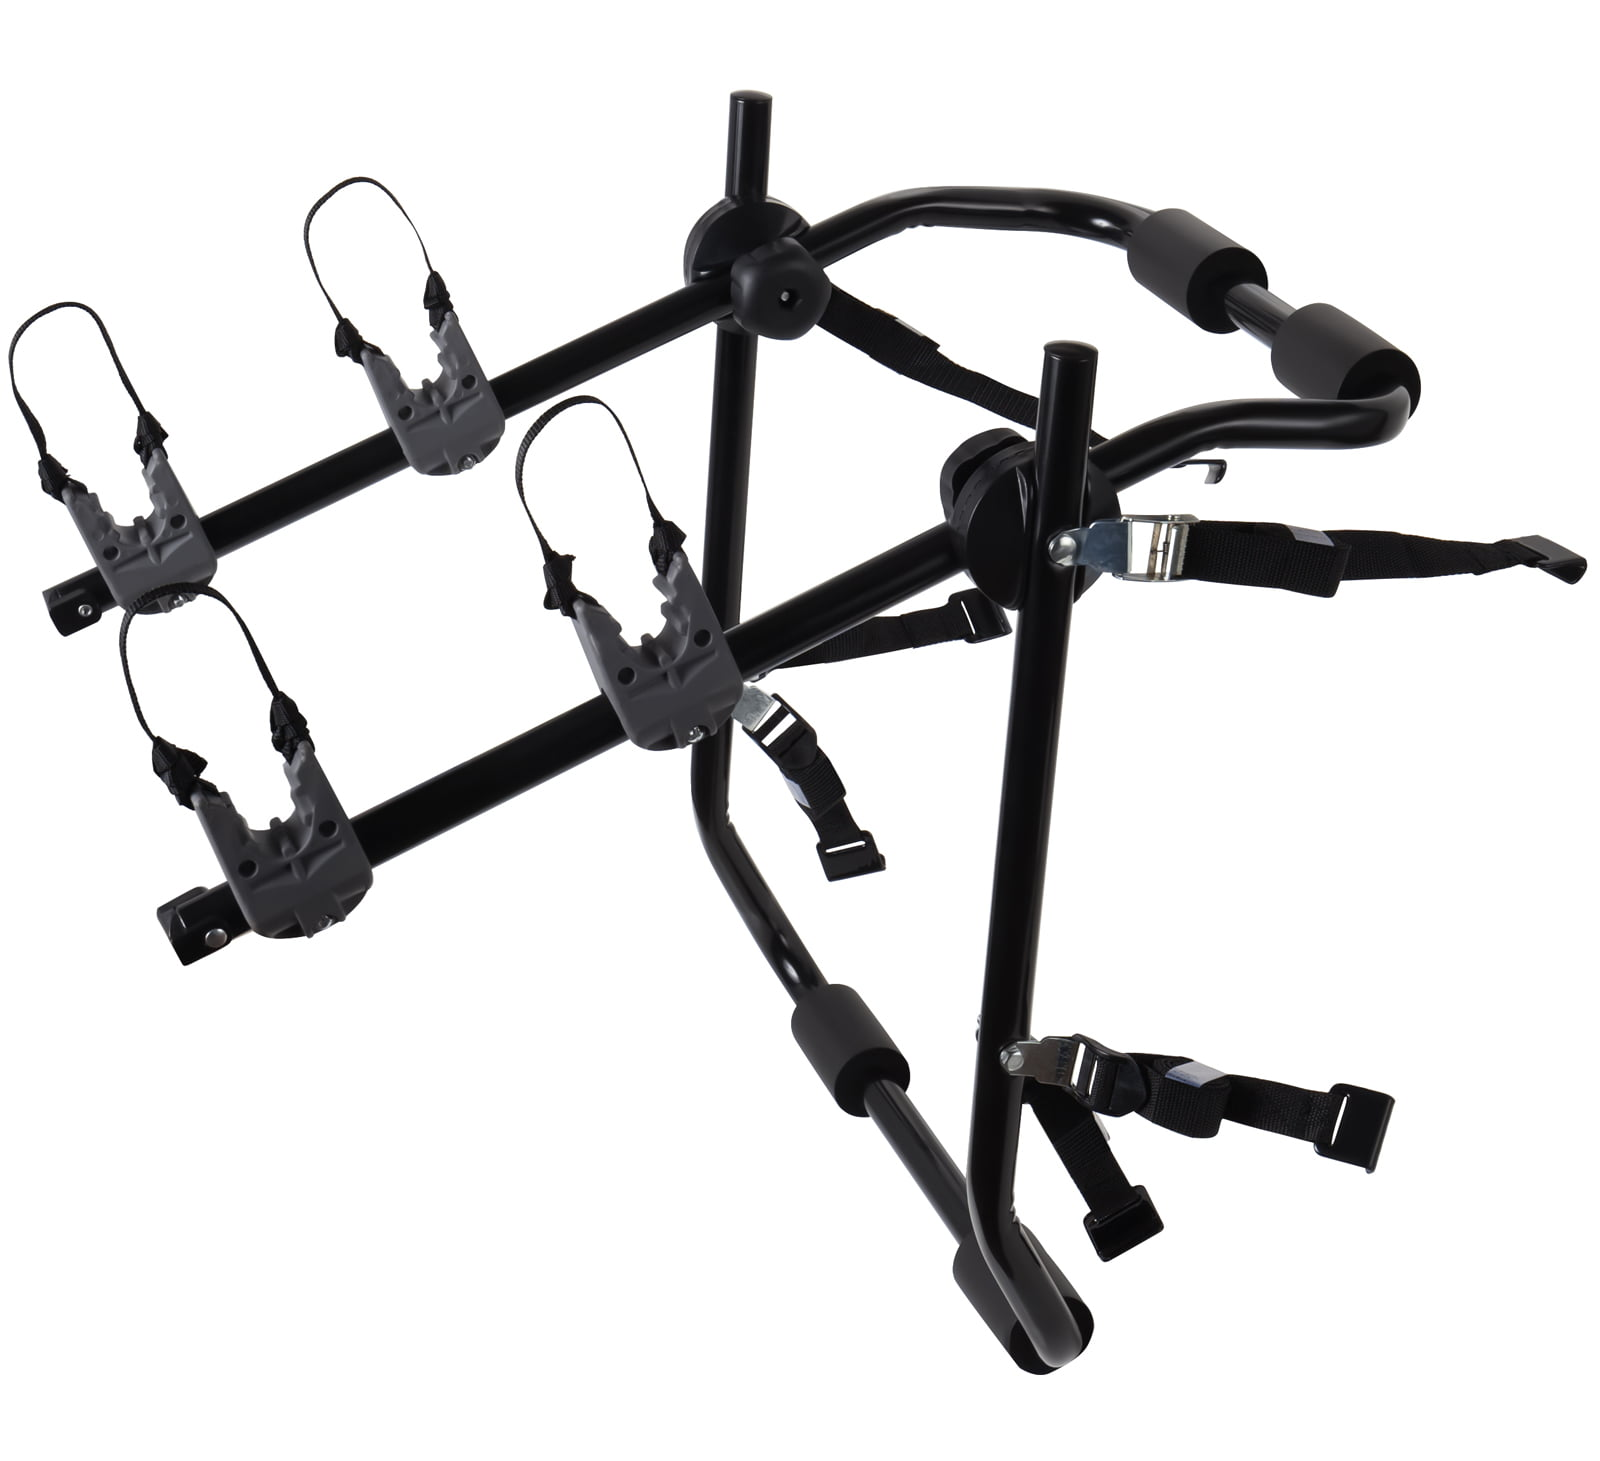 OxGord Two Bike Trunk Rack Mount For Cycling Hitch Carrier For Most Sedan Cars by OxGord